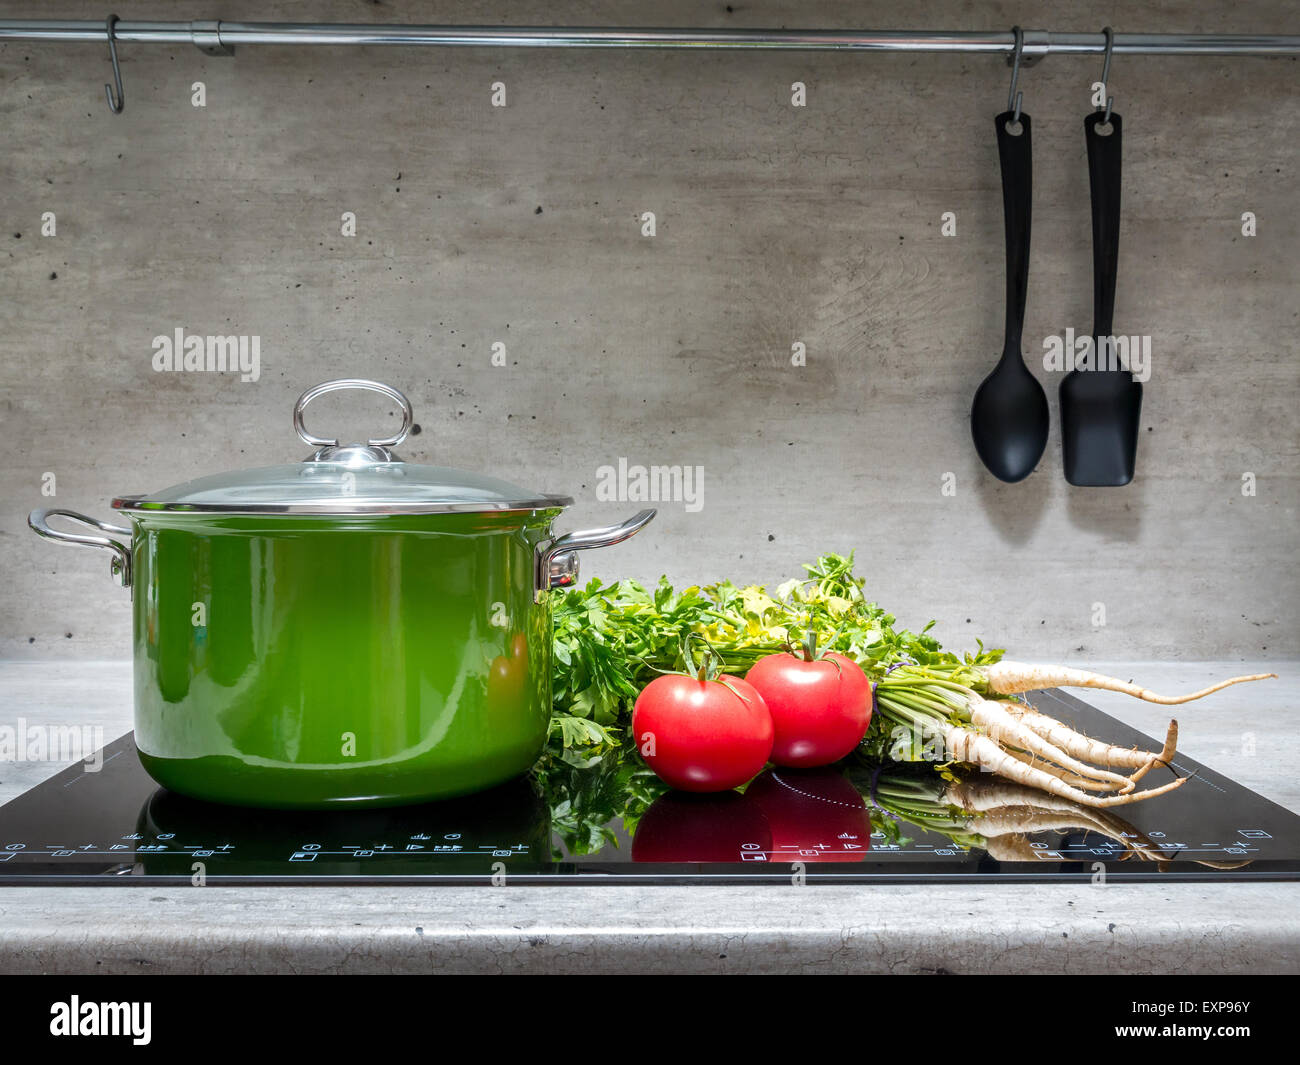 Green enamel stewpot with parsley and two tomatoes on black induction cooker - Stock Image